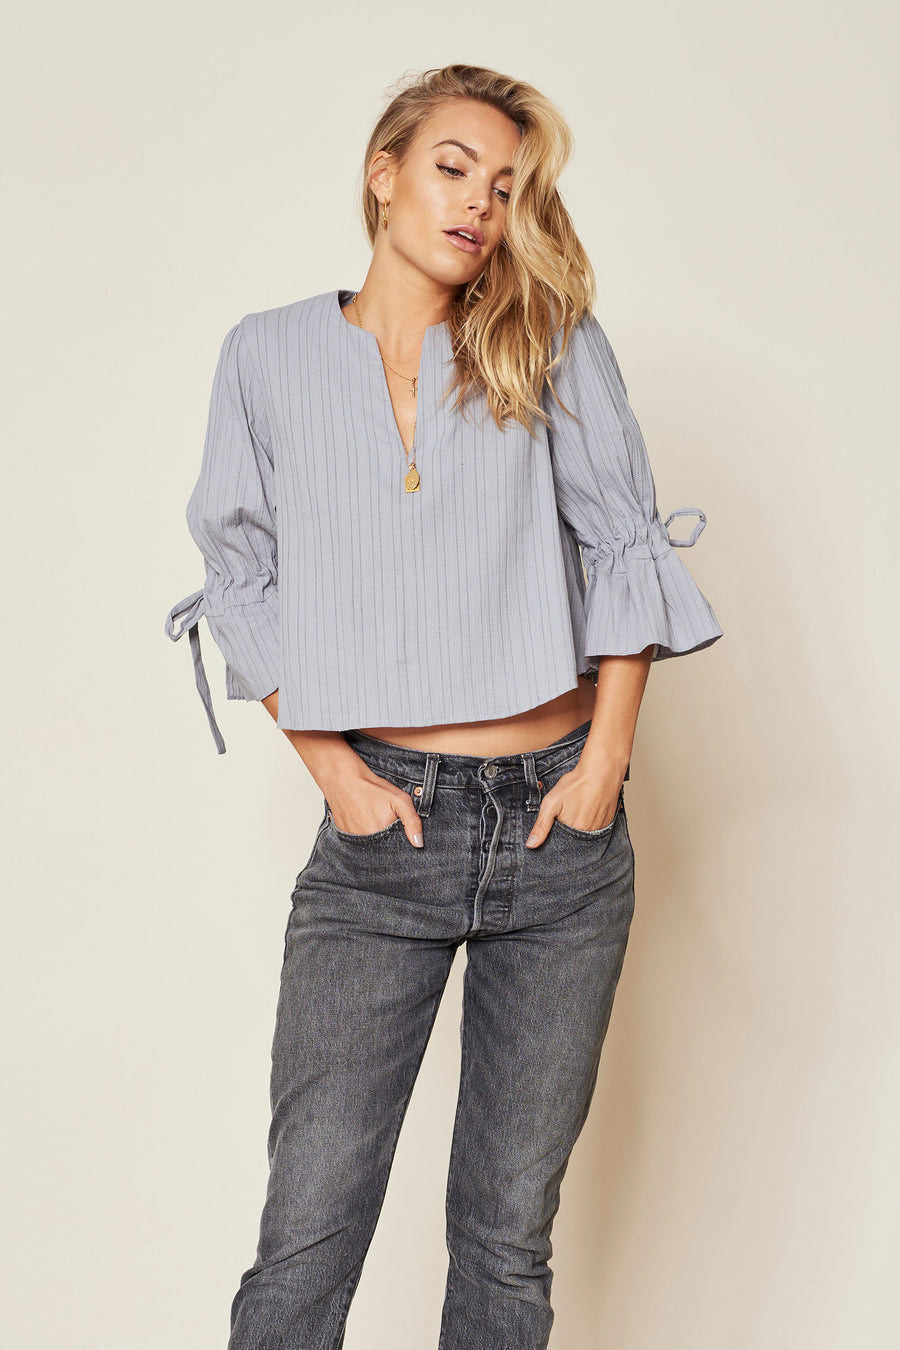 THE EAST ORDER - ZINNIA TOP - Style on Point